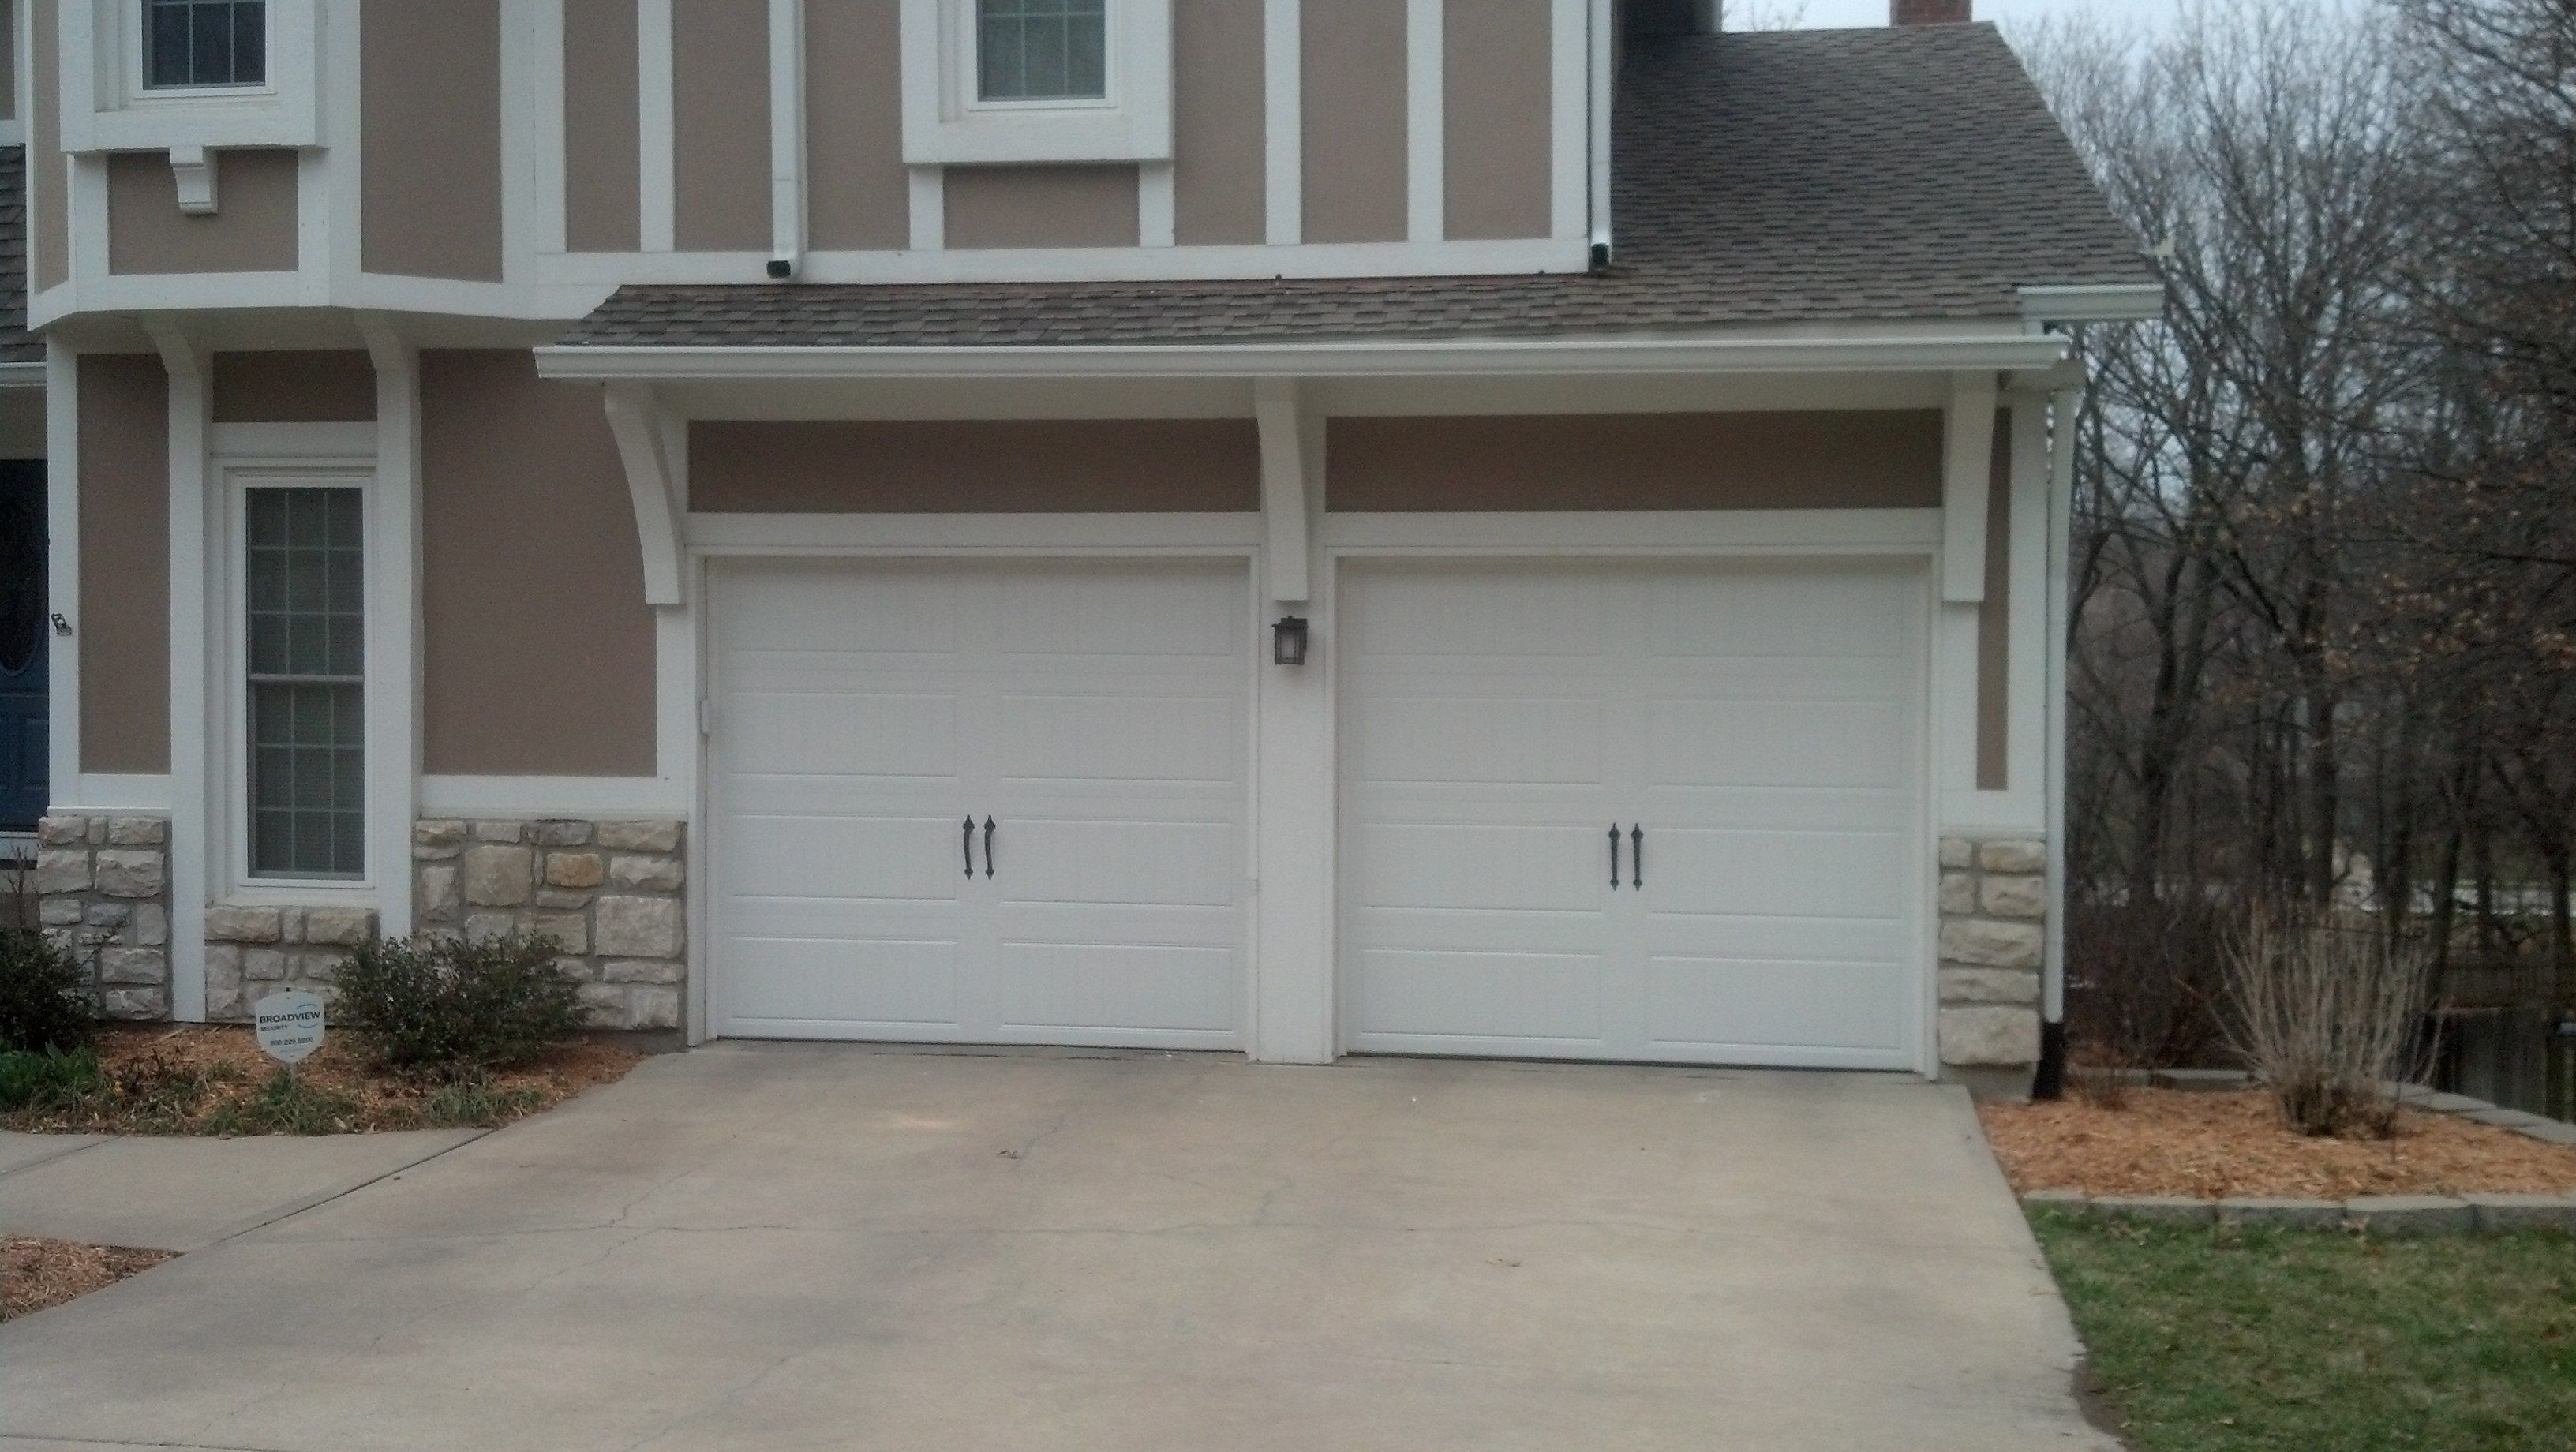 1840 #446C87  Insulated Garage Doors Installed By Royal Garage Door Royaldoor.com pic Installed Garage Doors 37213264